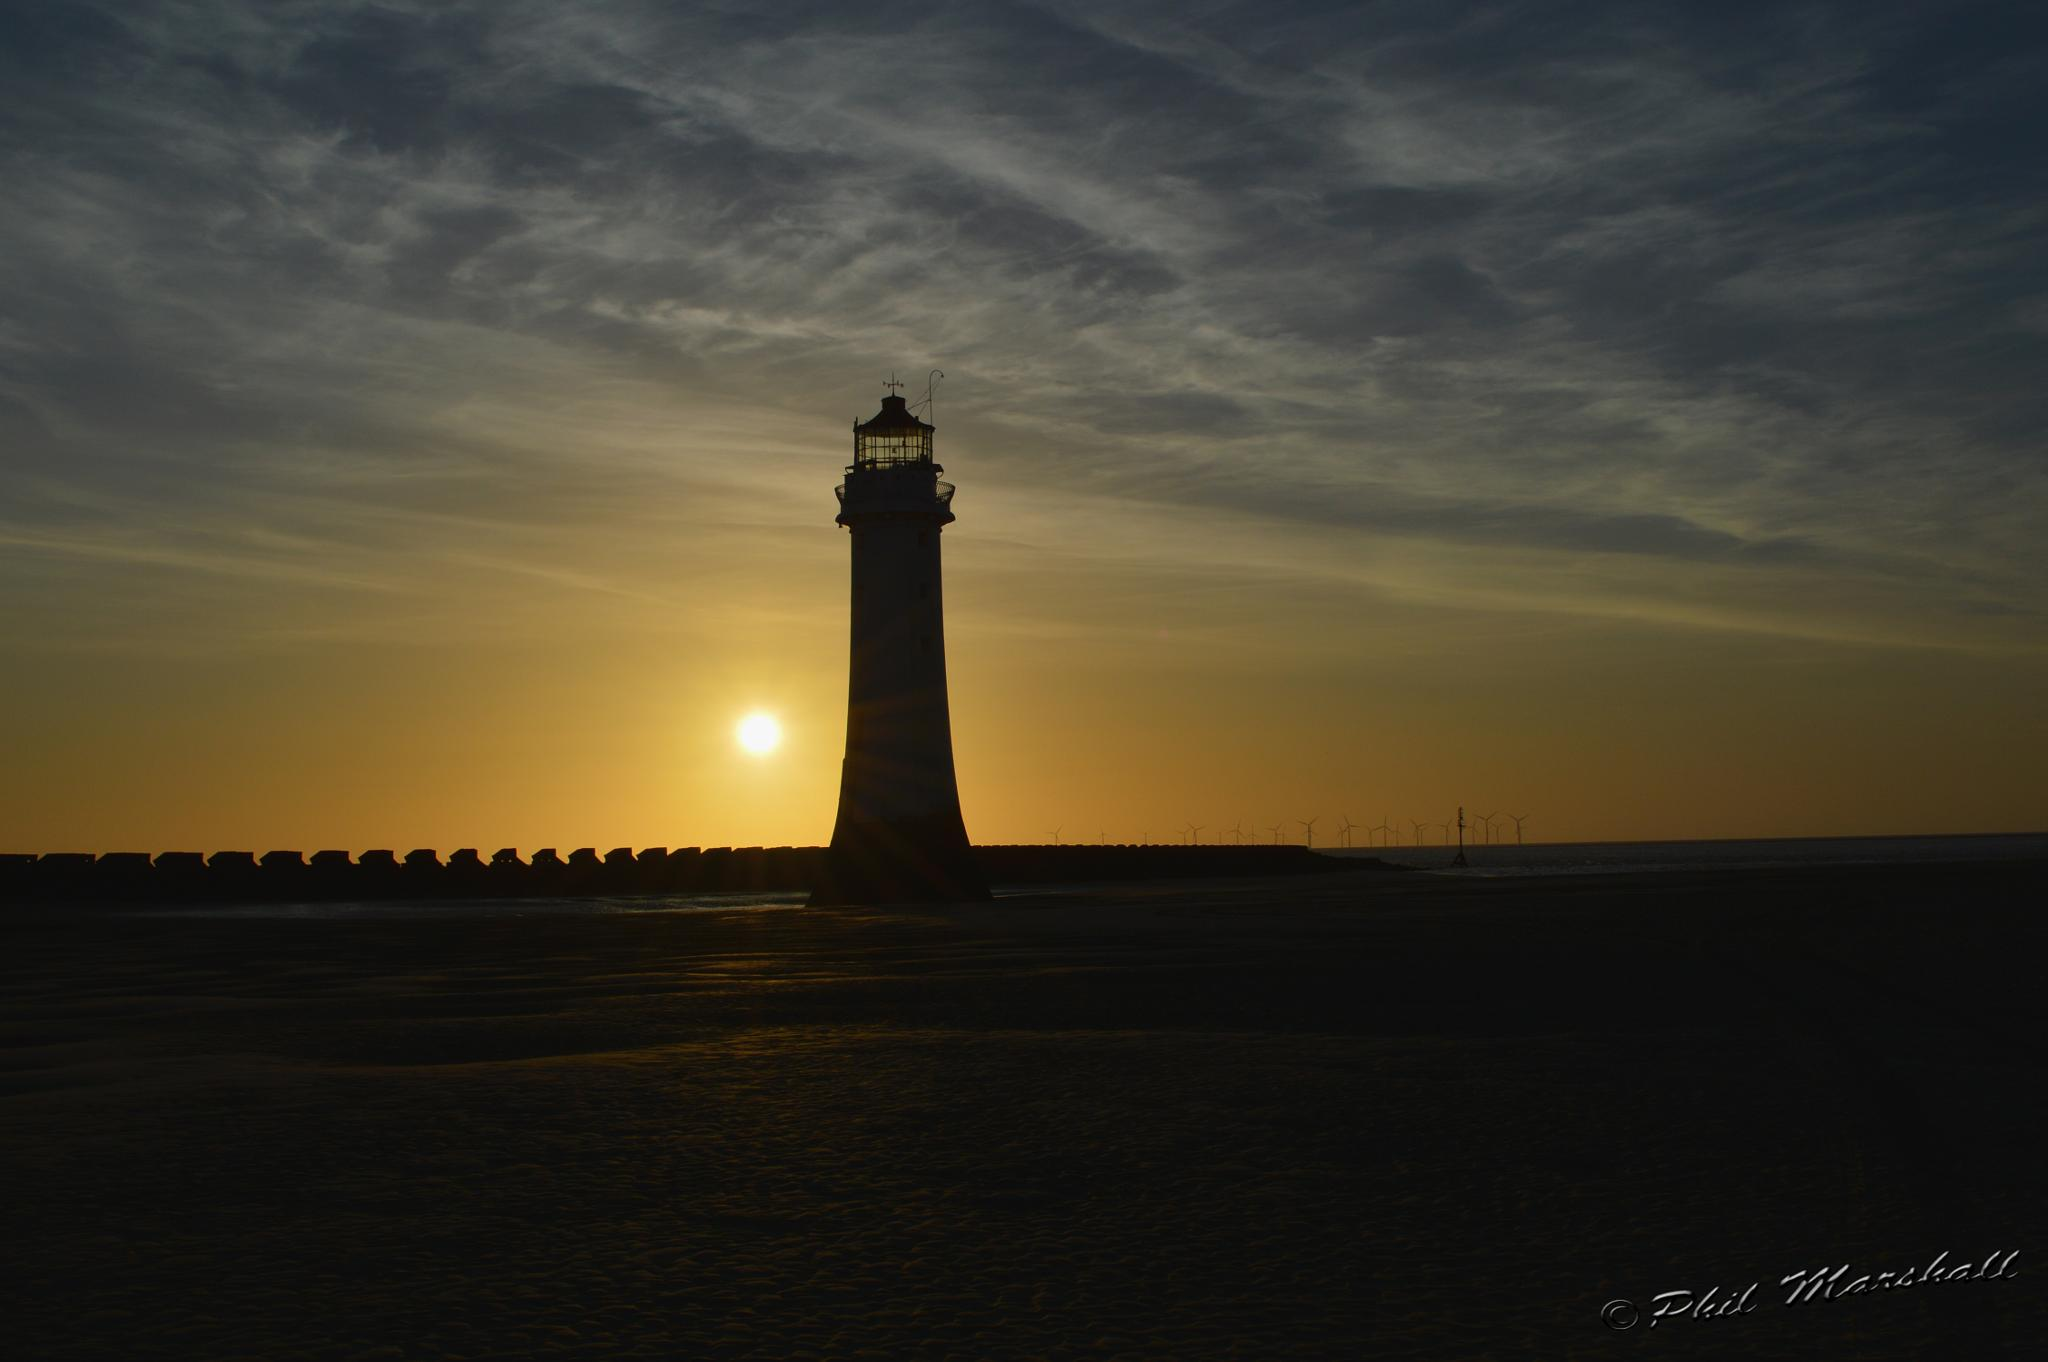 Sunset on the lighthouse by Phil Marshall